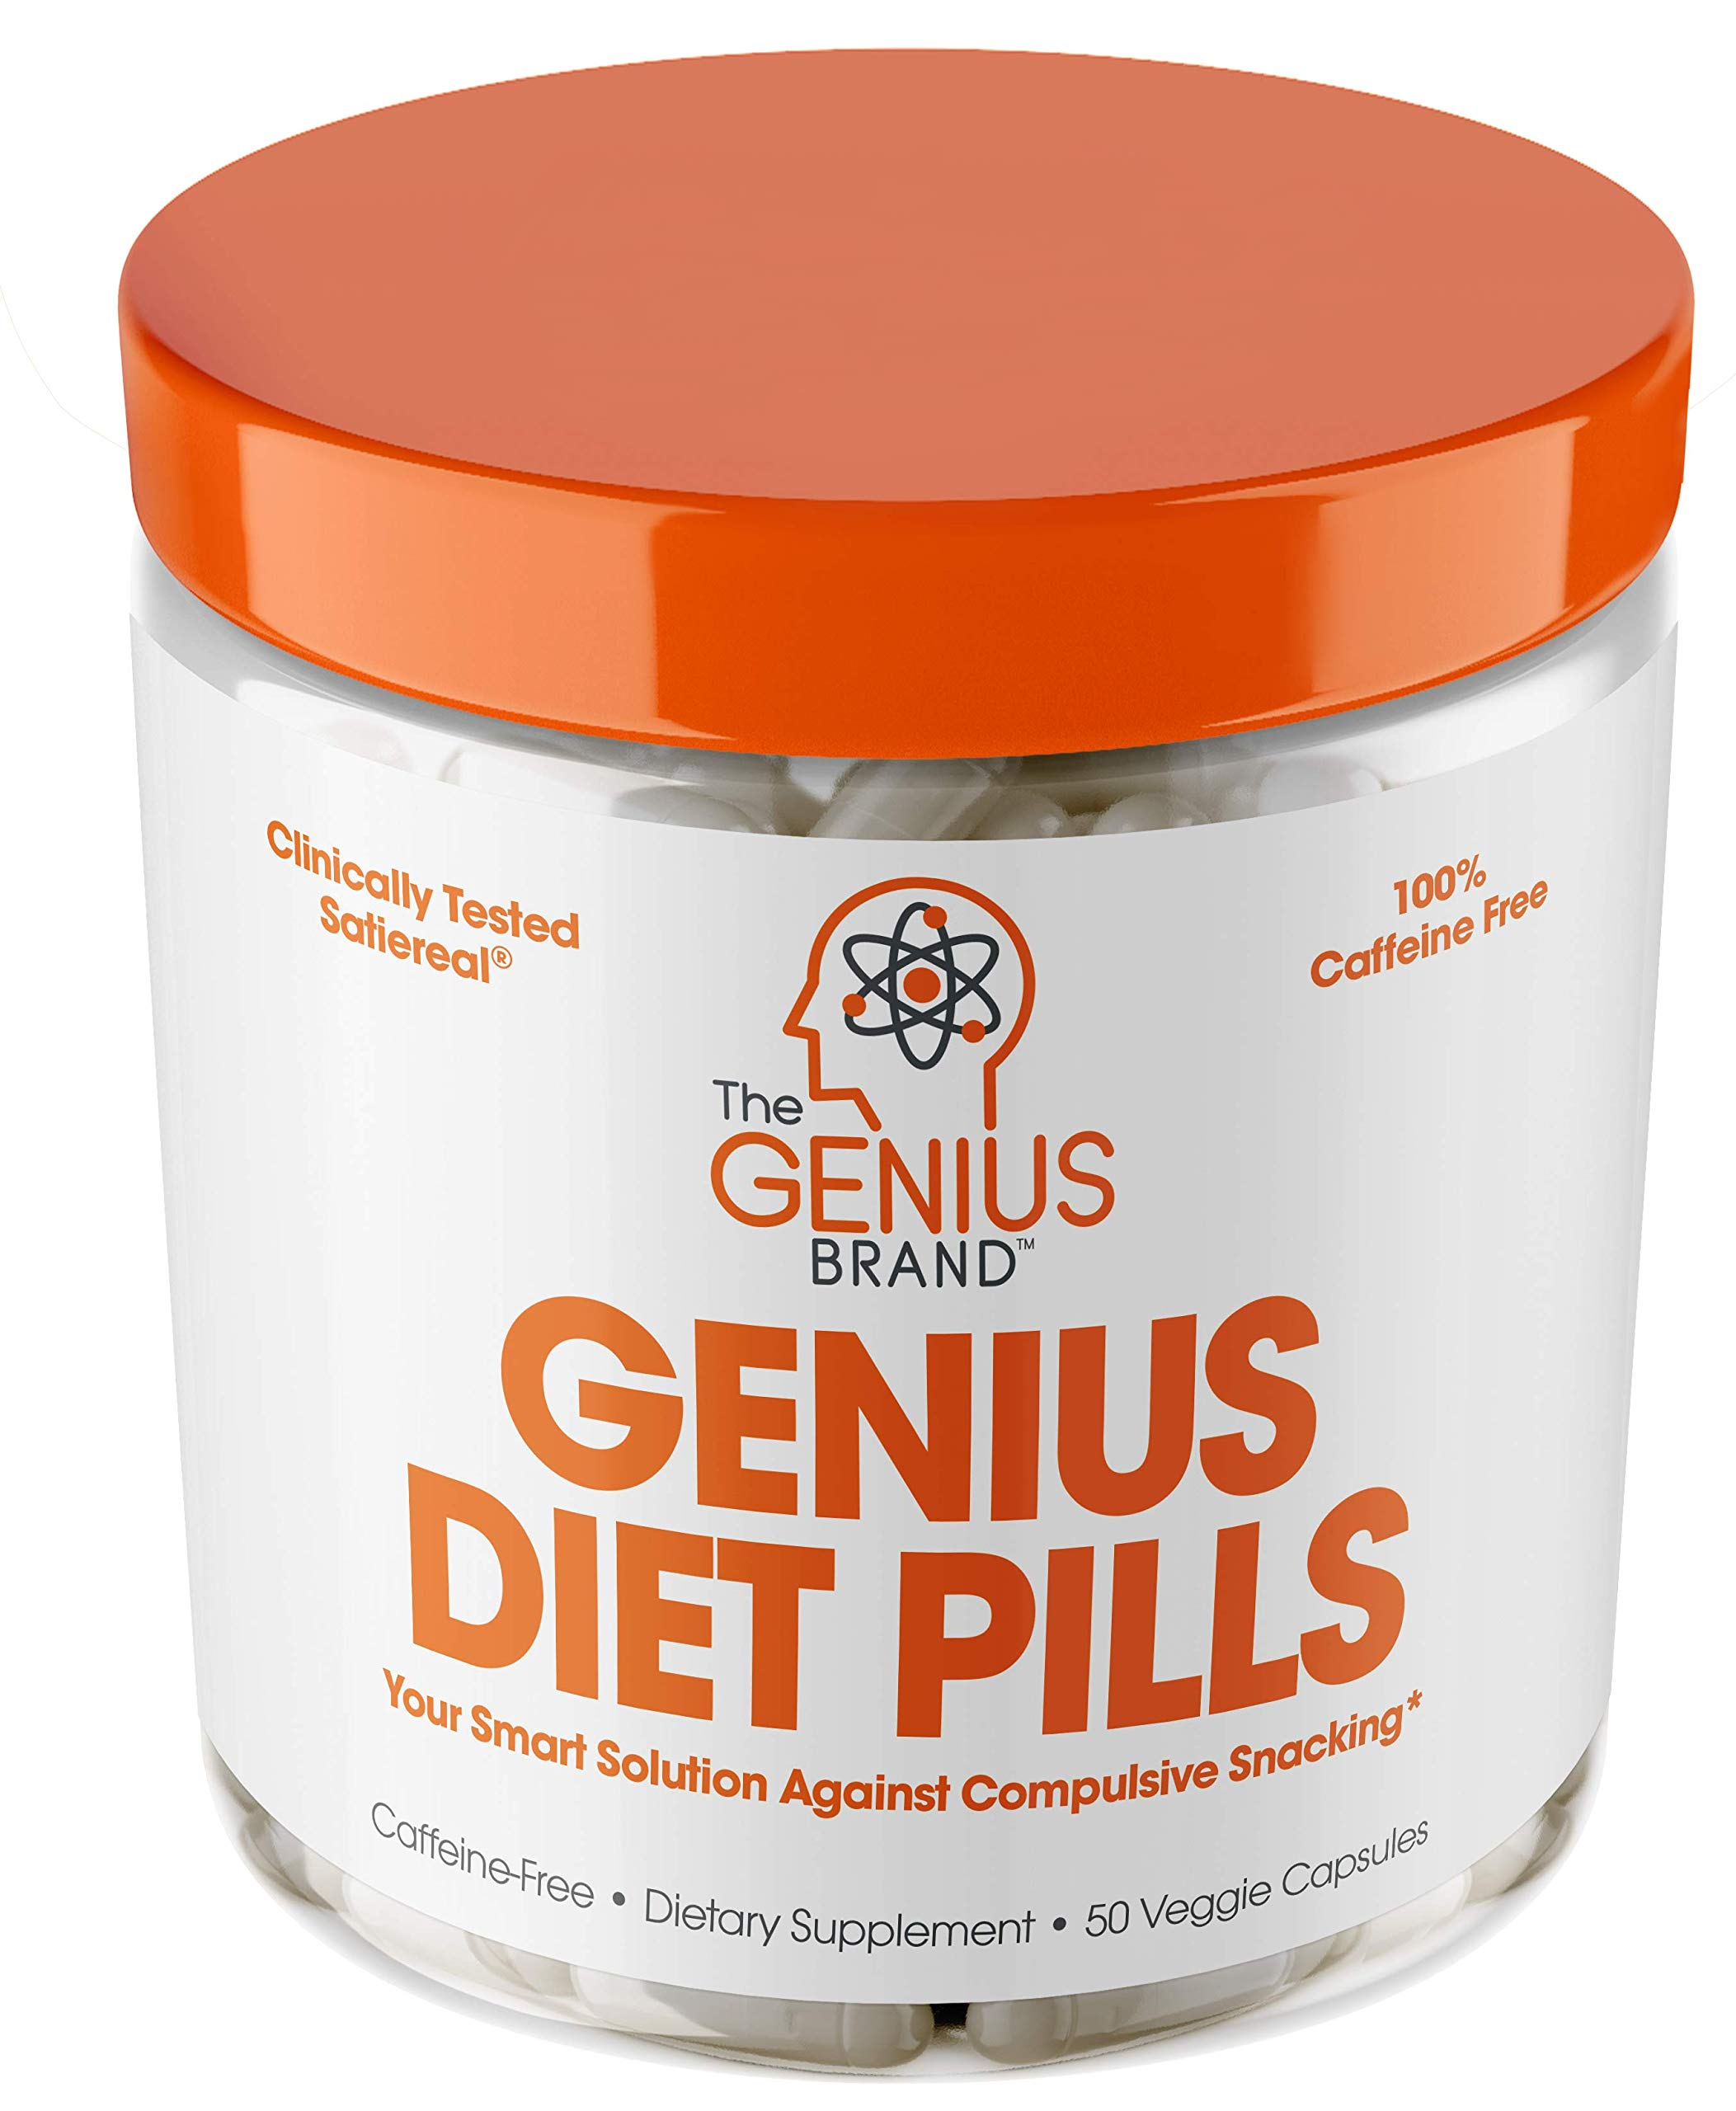 Genius Diet Pills - The Smart Appetite Suppressant That Works Fast for Safe Weight Loss, Natural 5-HTP & Saffron Supplement Proven for Women & Men - Cortisol Manger + Thyroid Support, 50 Veggie Caps by The Genius Brand